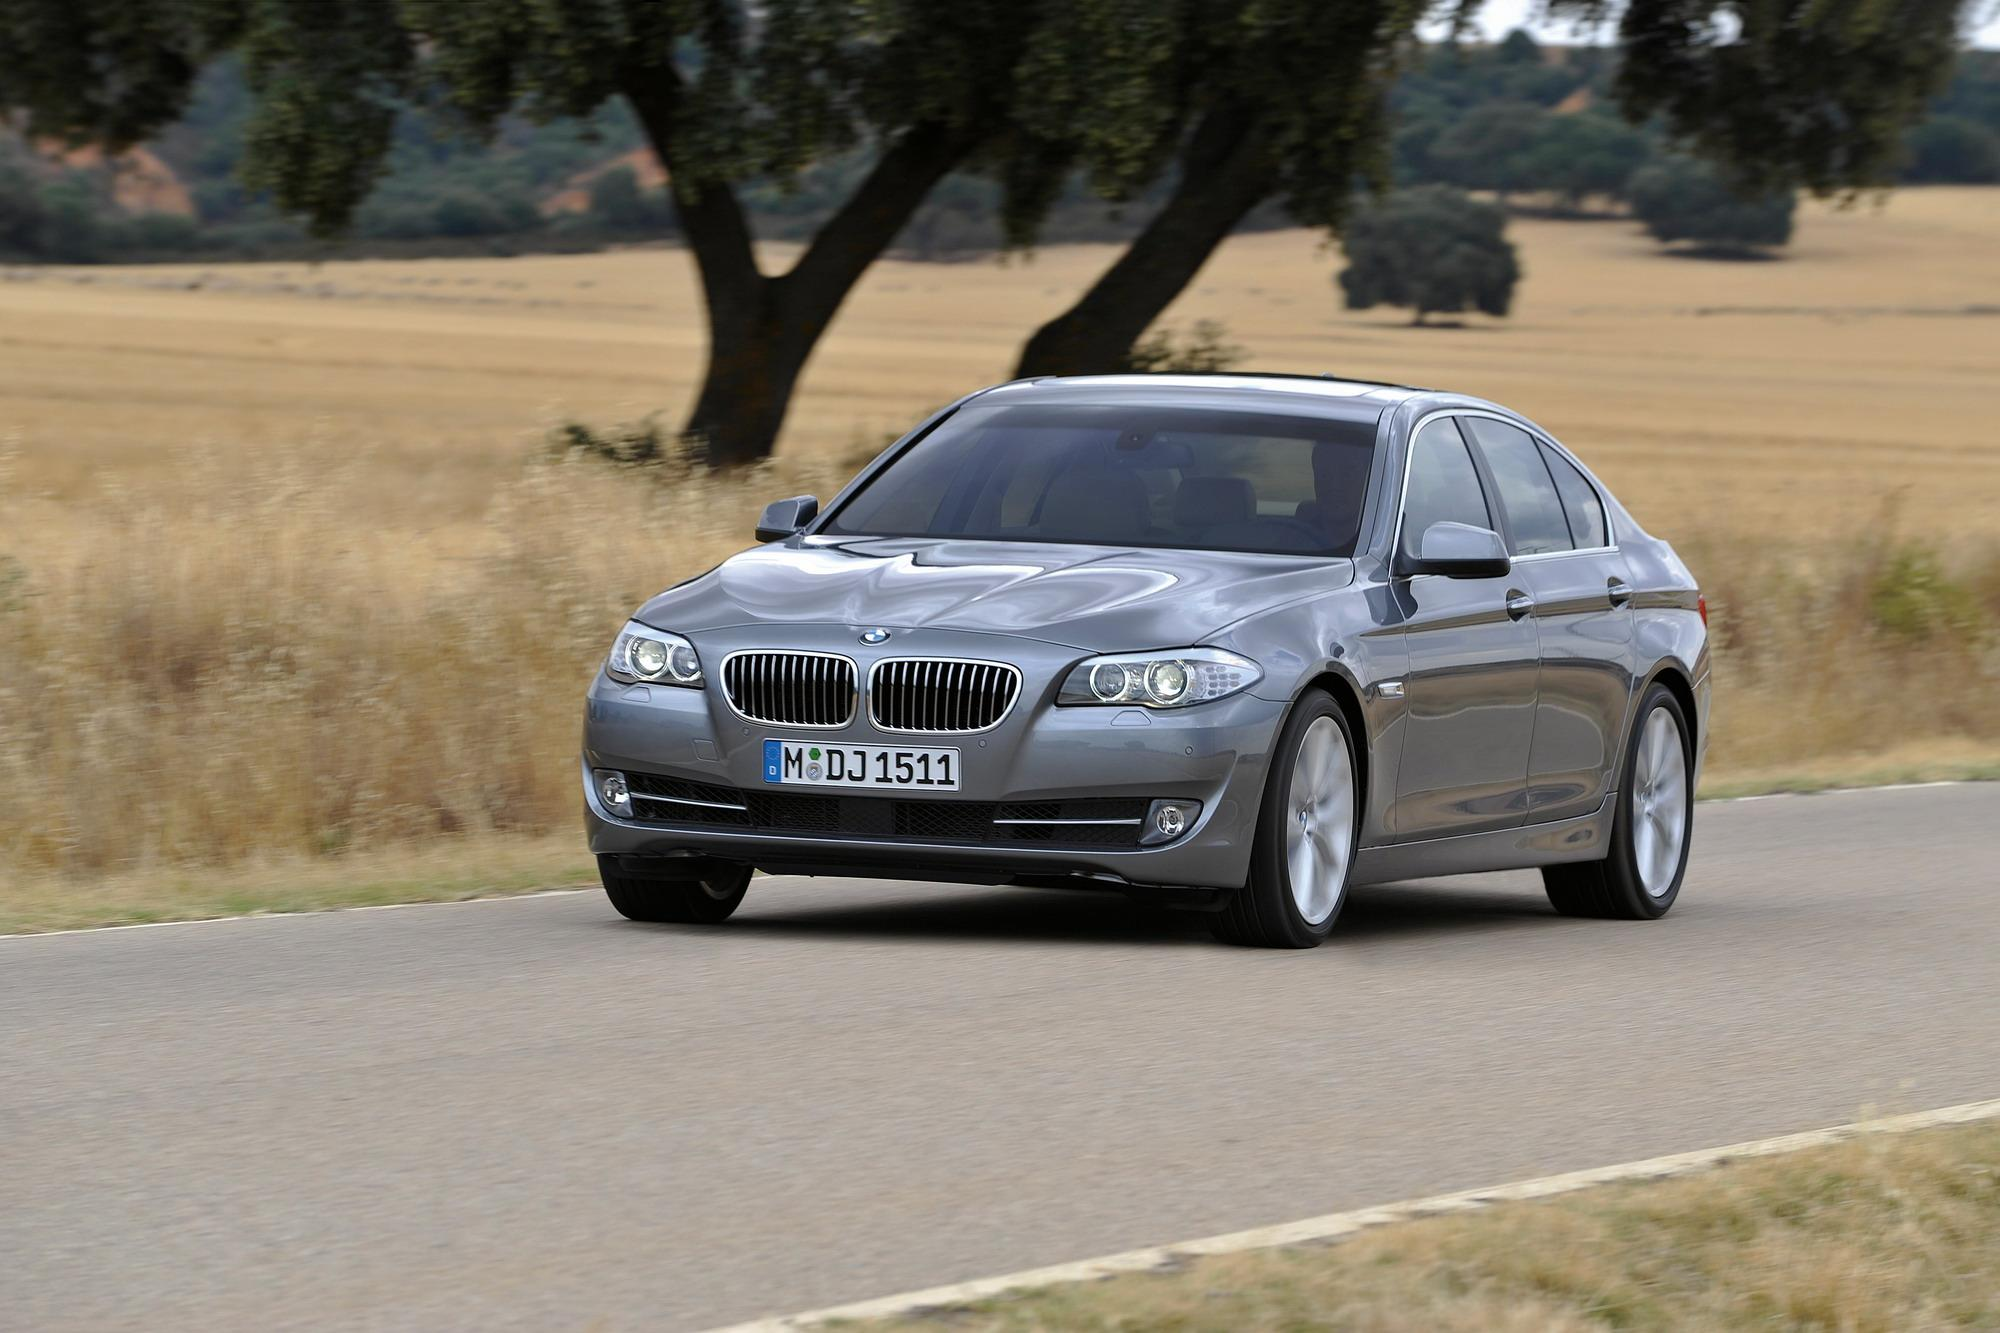 2011 bmw 5 series sedan gallery 334606 top speed. Black Bedroom Furniture Sets. Home Design Ideas